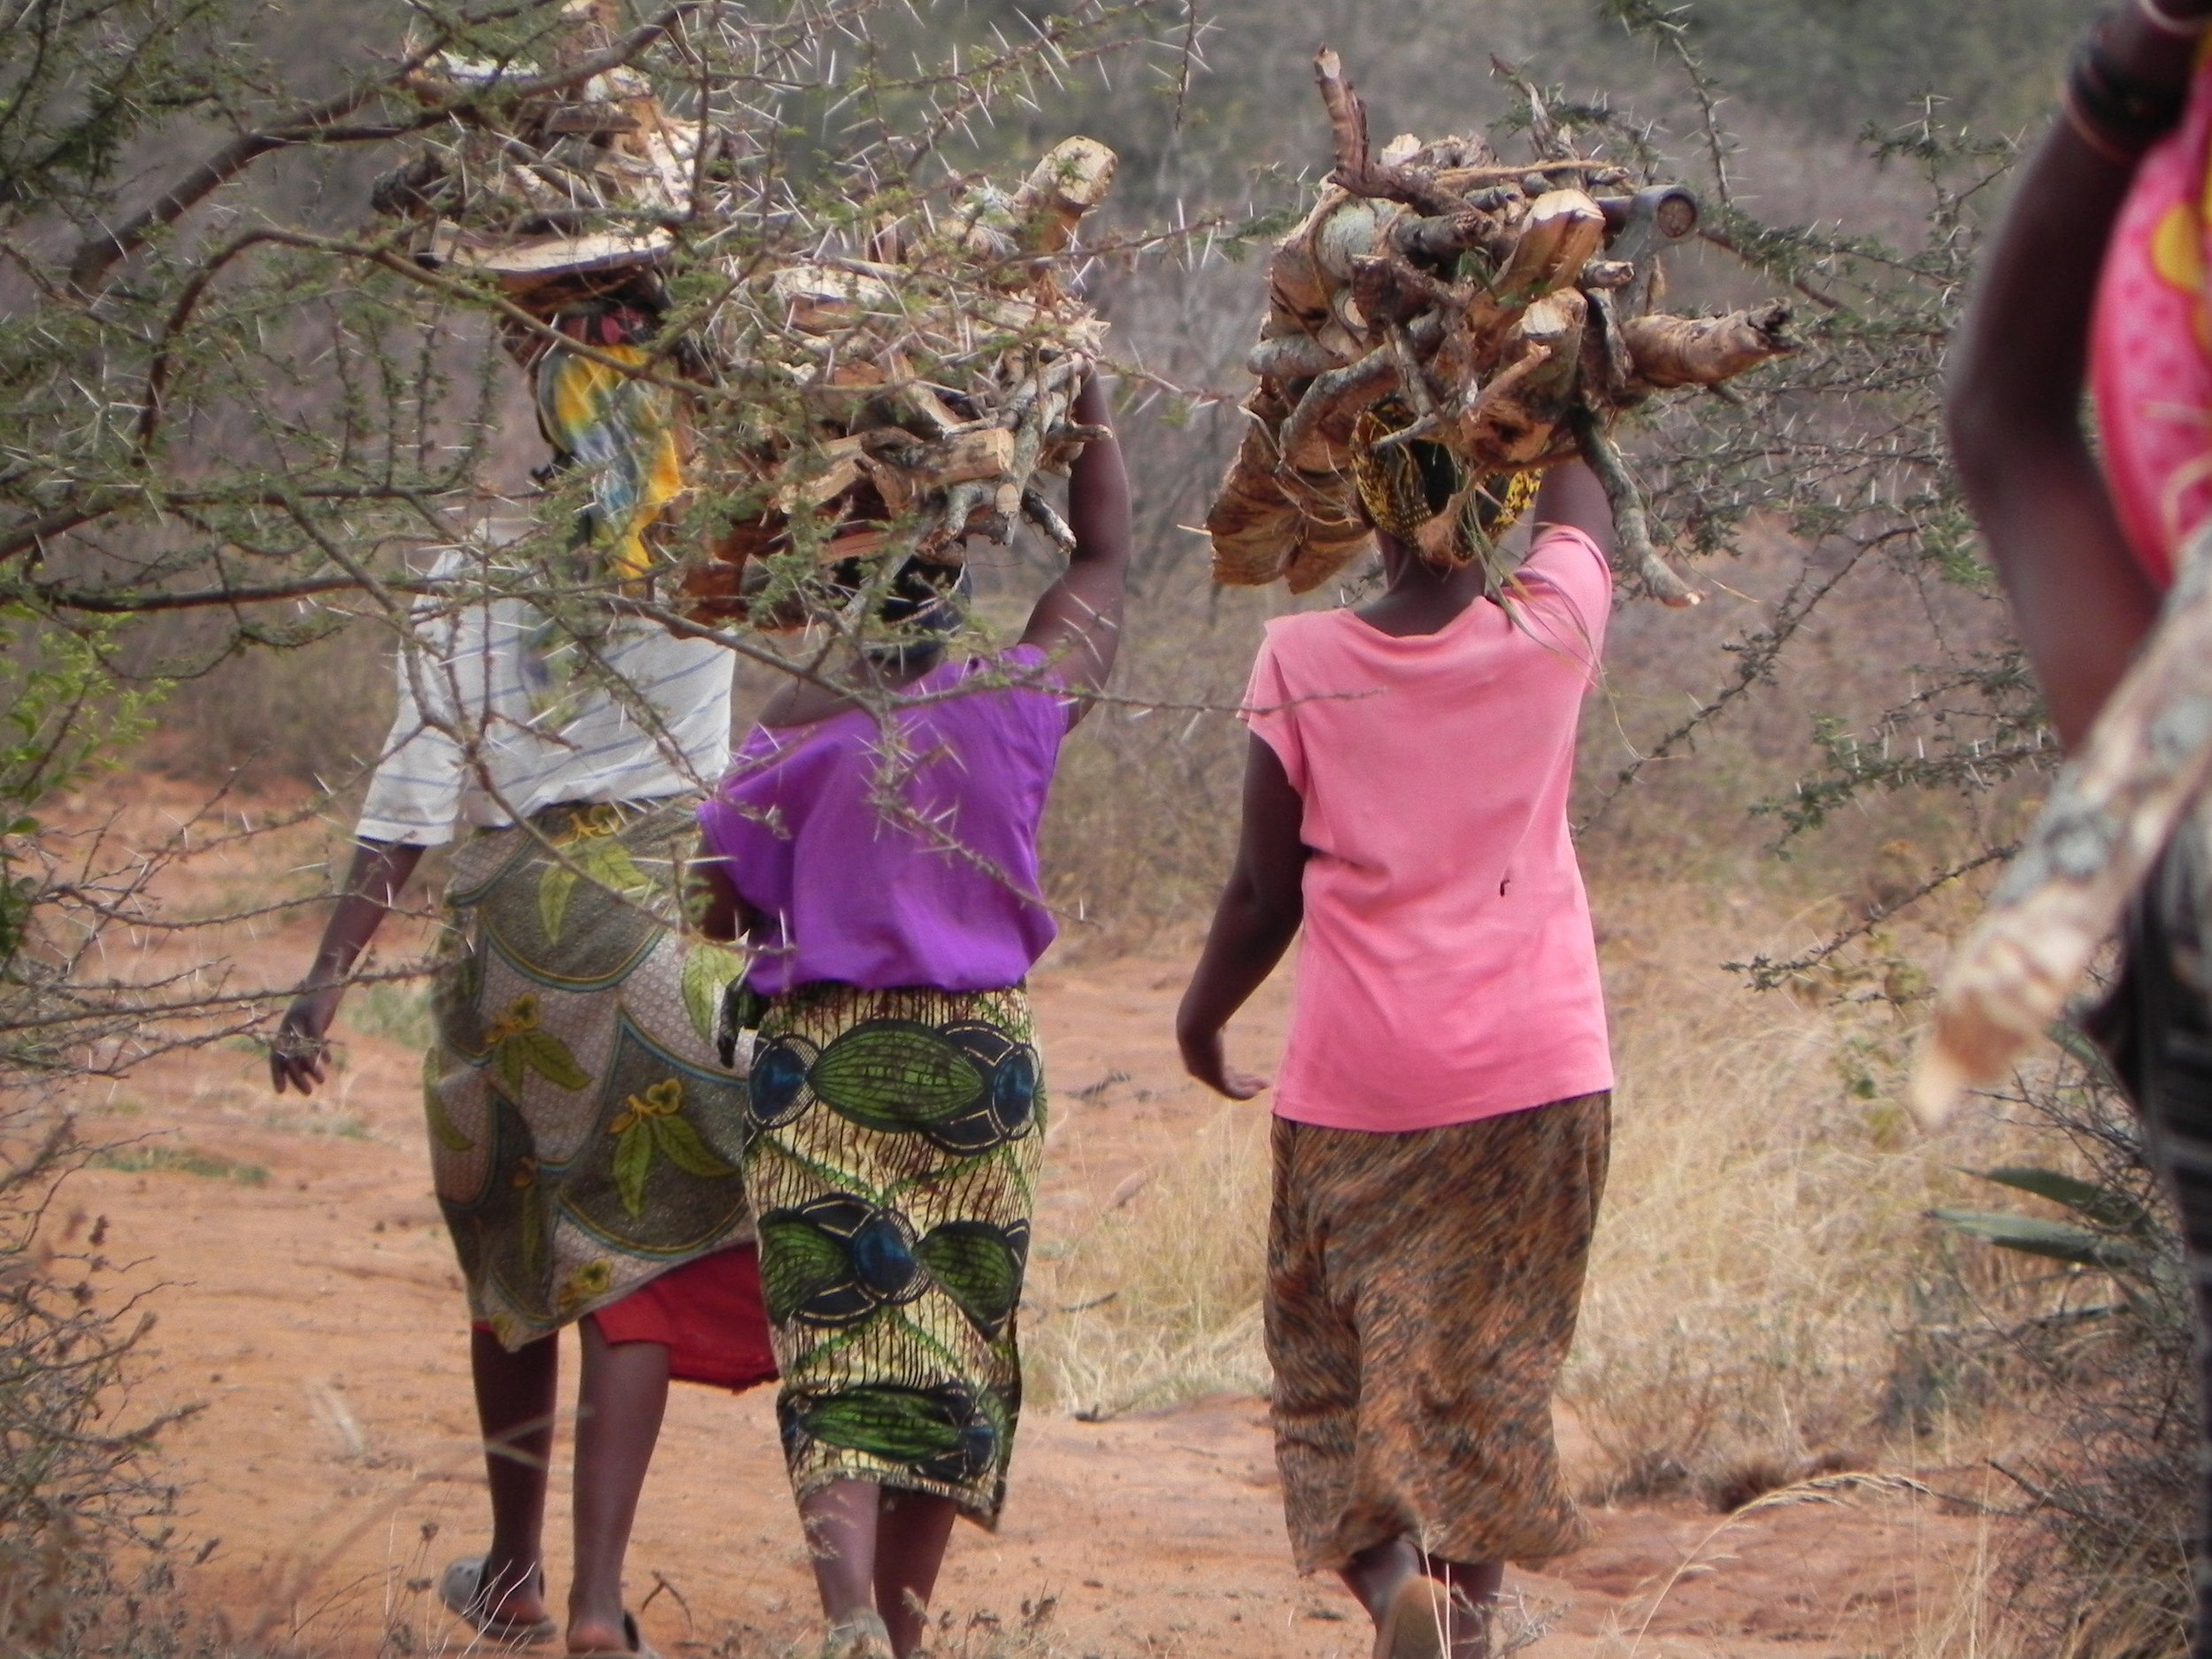 Villagers carry wood harvested from a forest preserve to their homes to make charcoal for cooking fuel - Tanzania